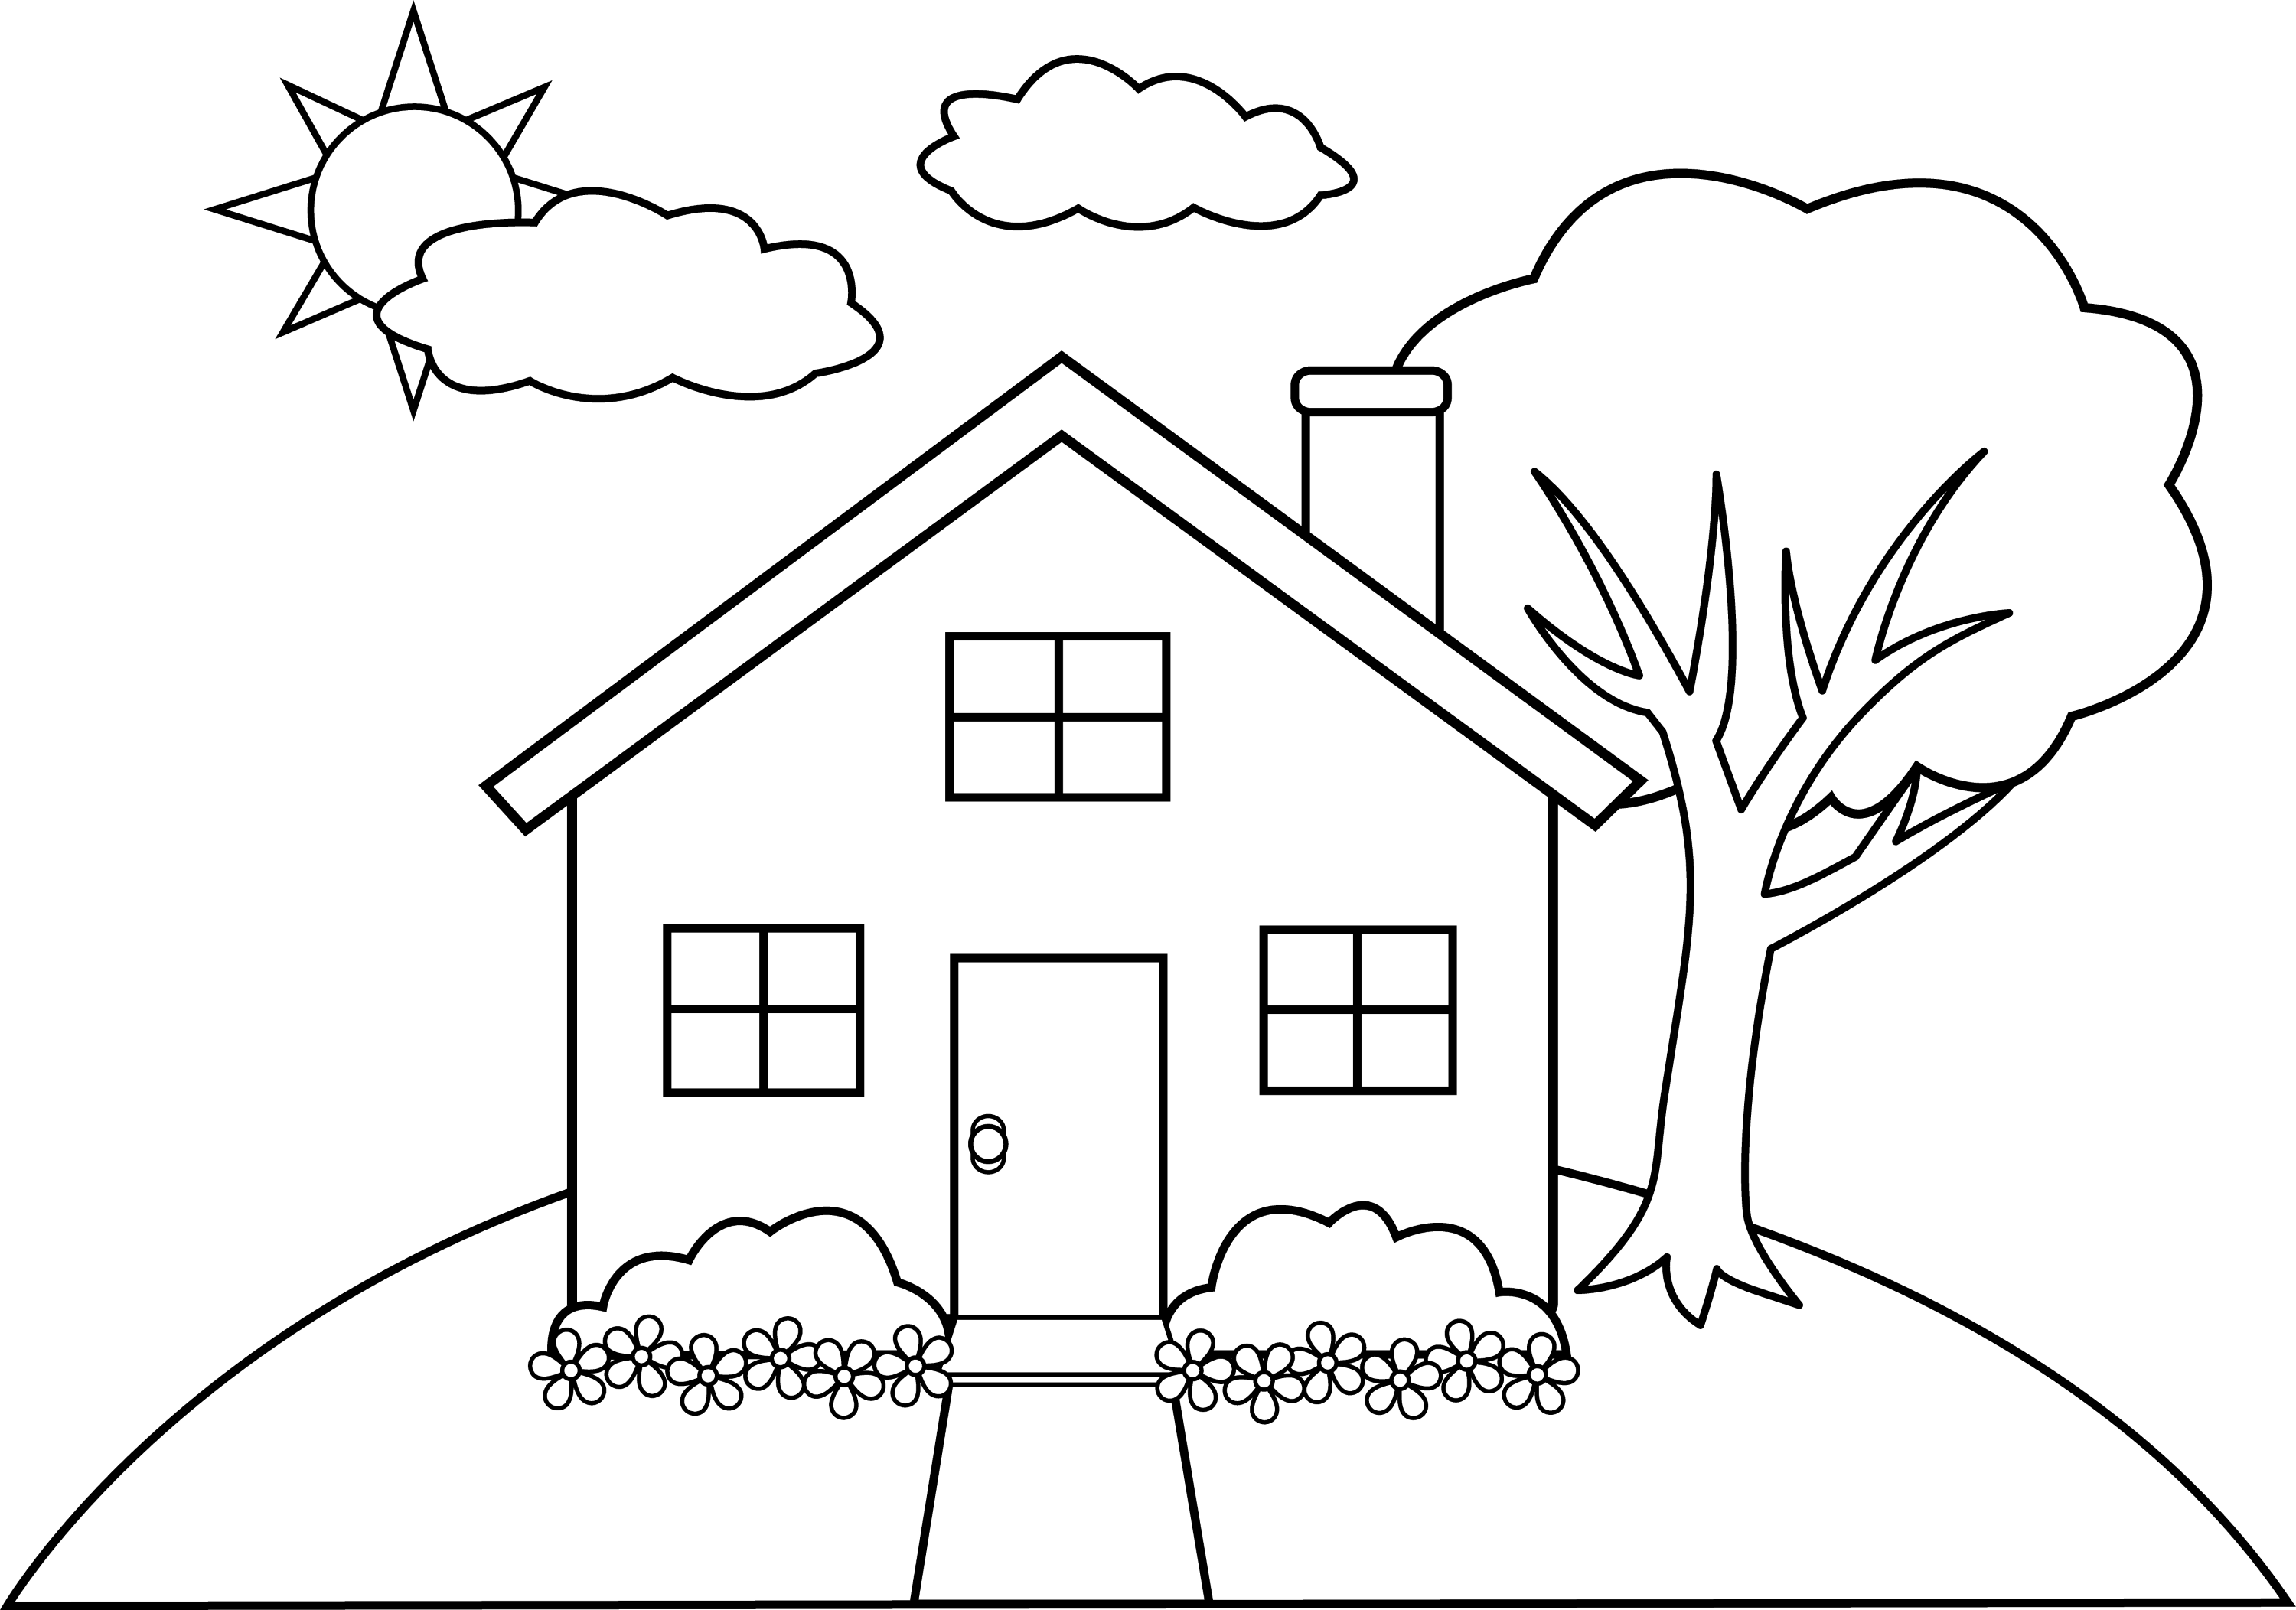 Line art of a little hill house